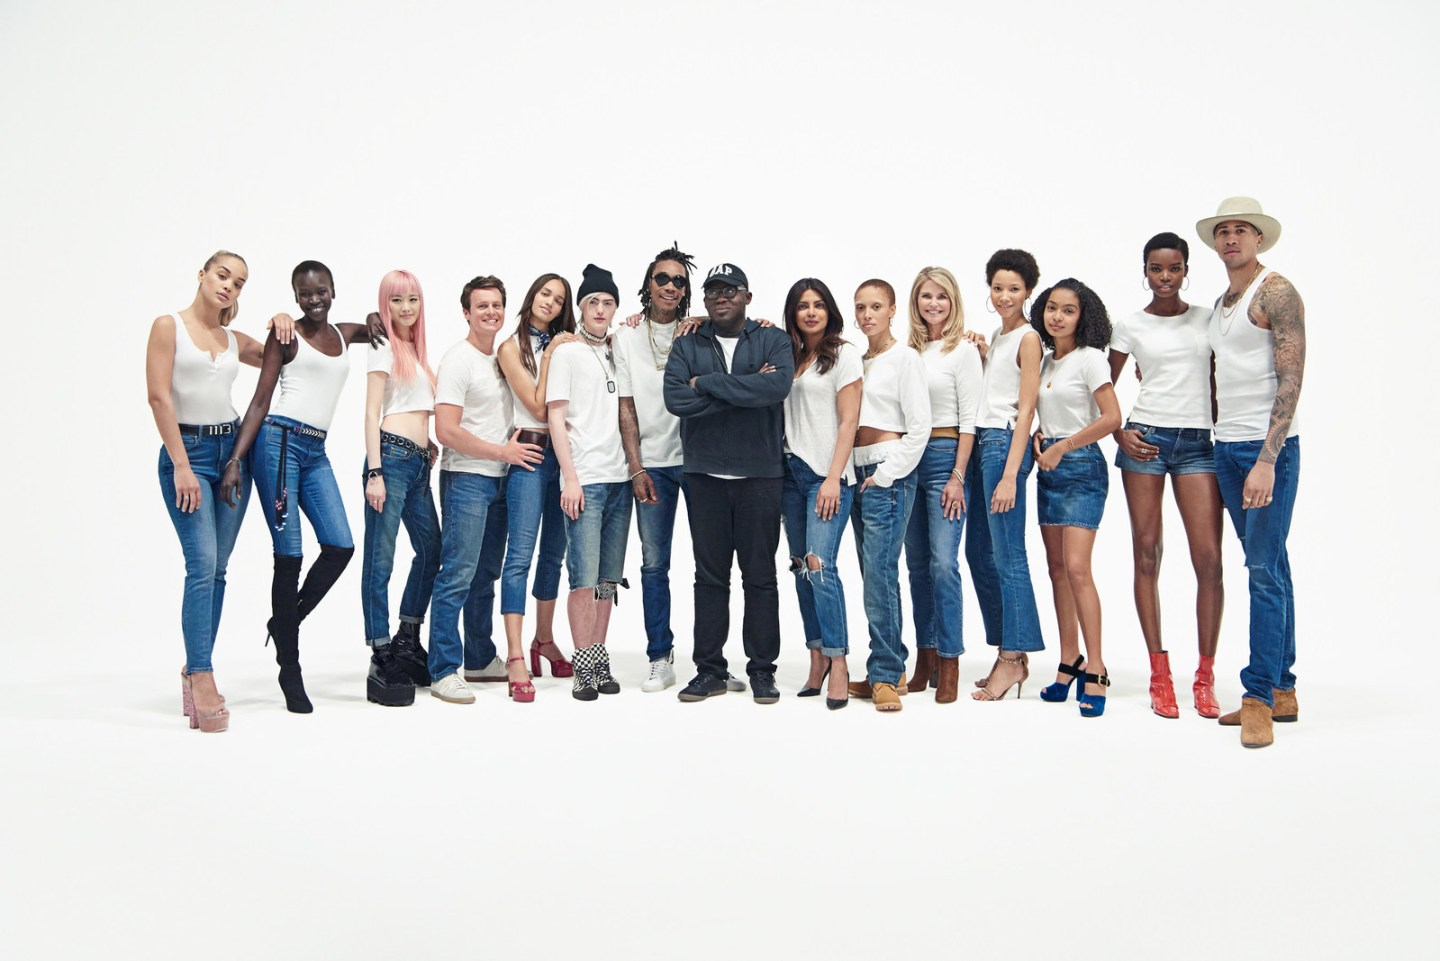 Gap Launches 'Bridging the Gap,' Edward Enninful's Directorial Debut